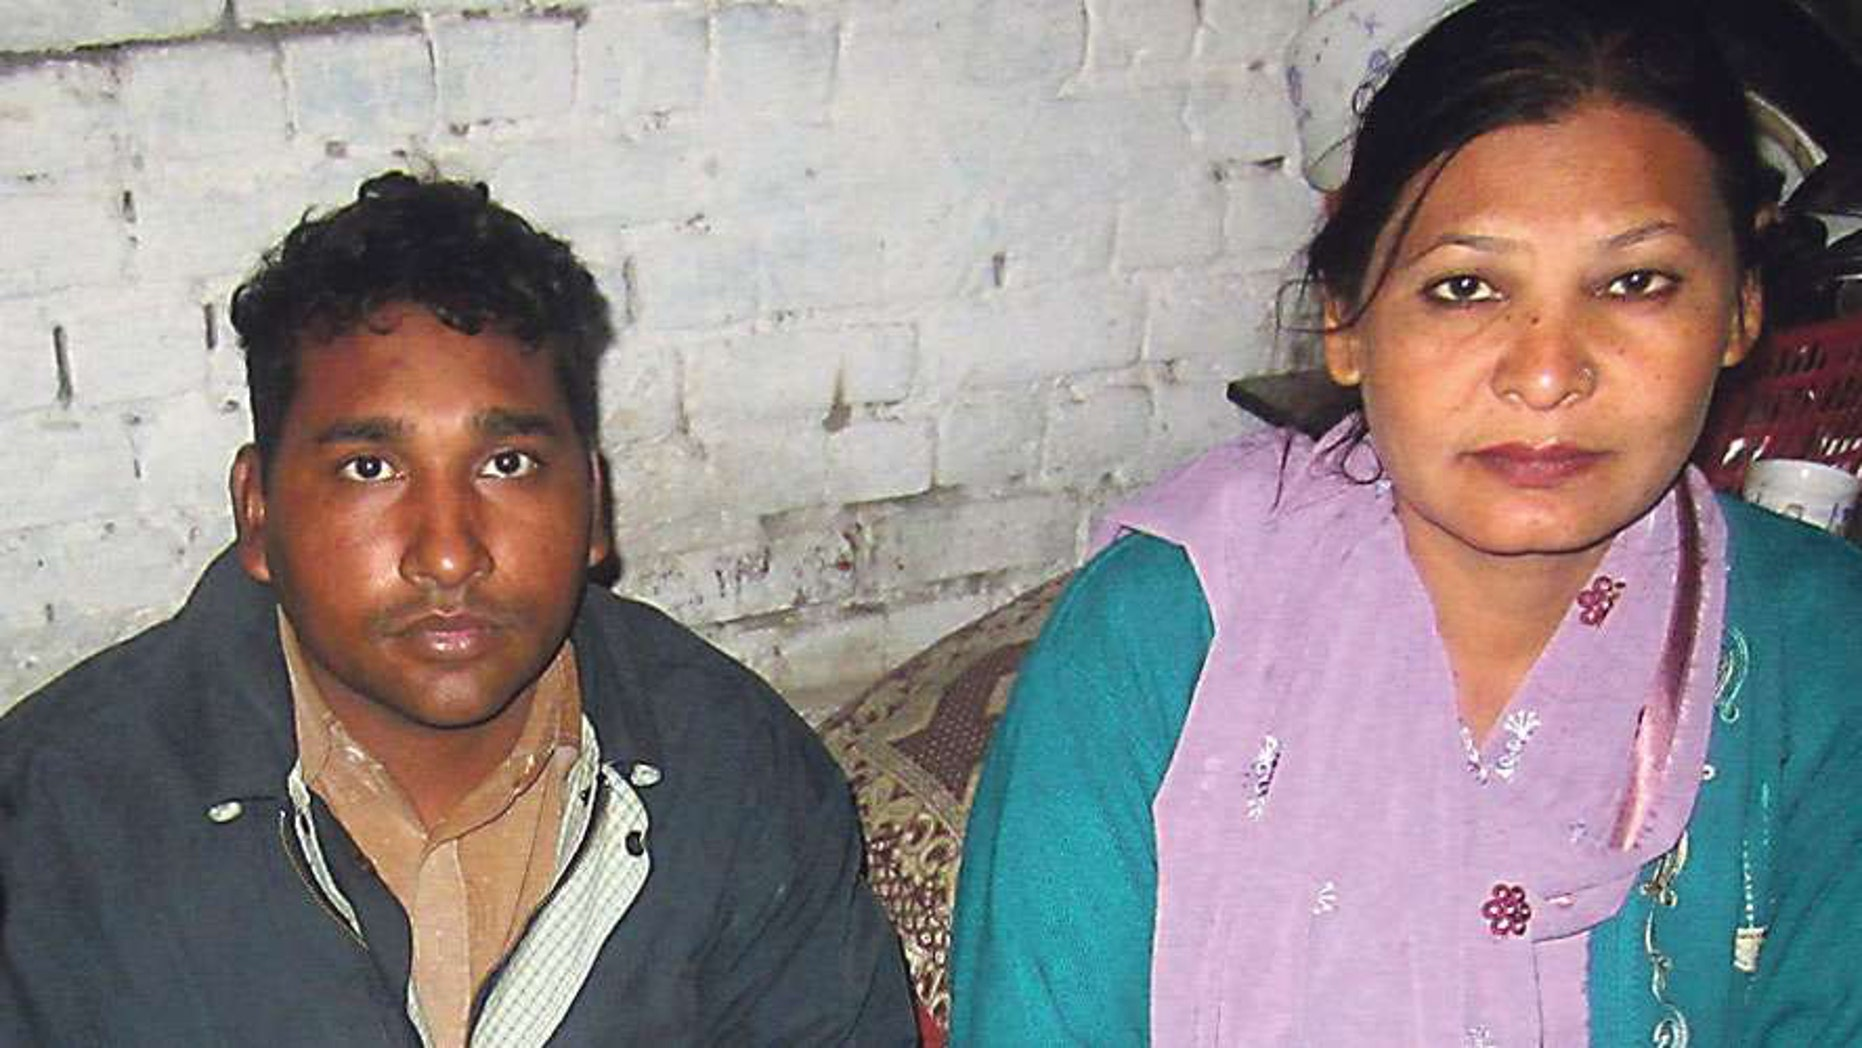 Pakistani Christian couple Shafqat Emmanuel and Shagufta Kauser – who are still waiting for their appeal to be heard by the Lahore High Court (LHC) – were tried and put on death row in April, 2014. Shagufta is the second woman after Bibi to be ordered capital punishment.